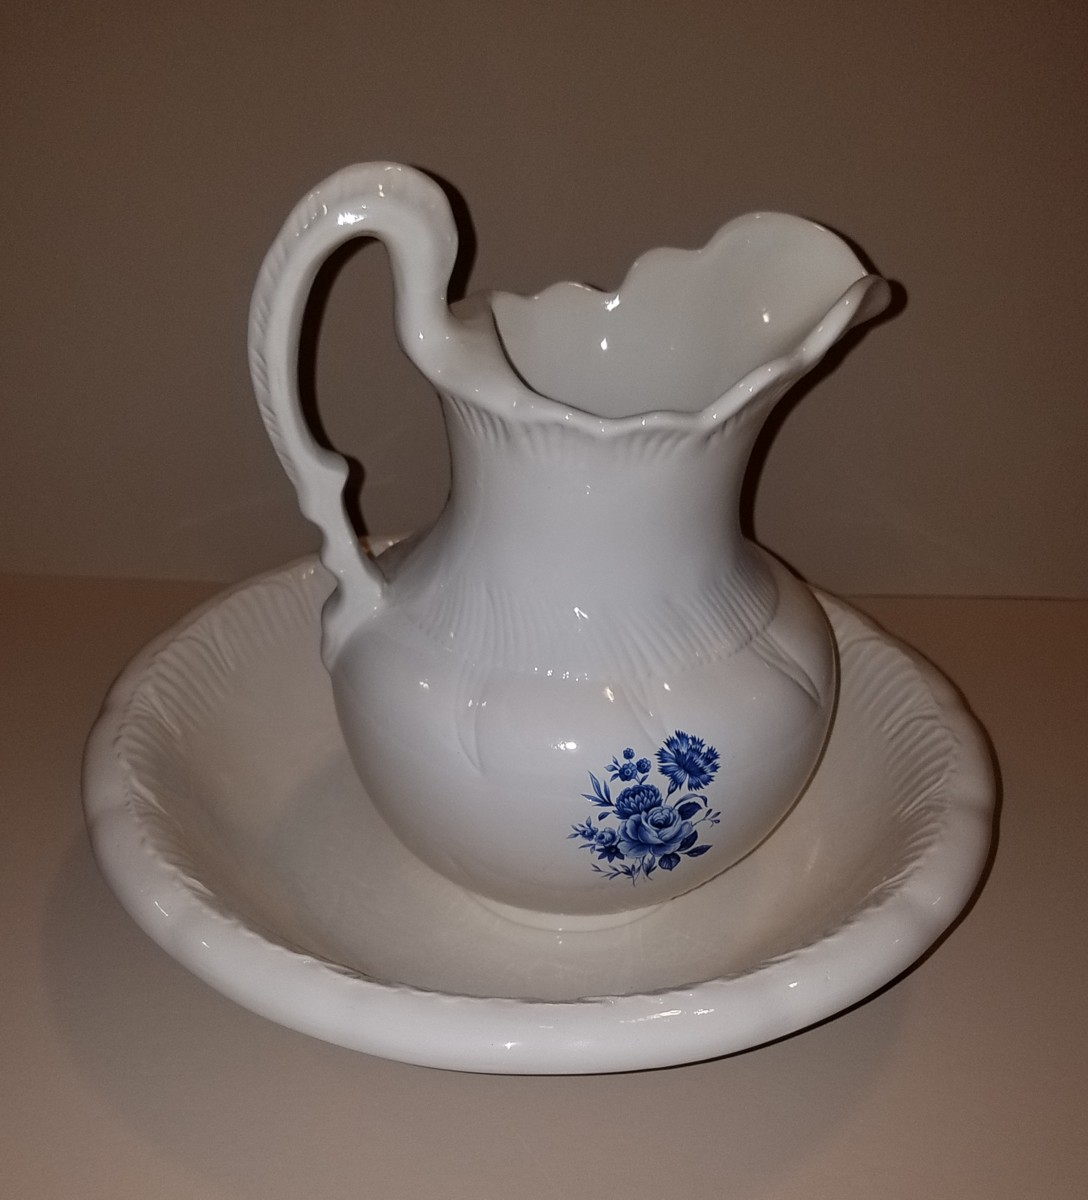 Pitcher and Wash Bowl donated by Roger Callahan